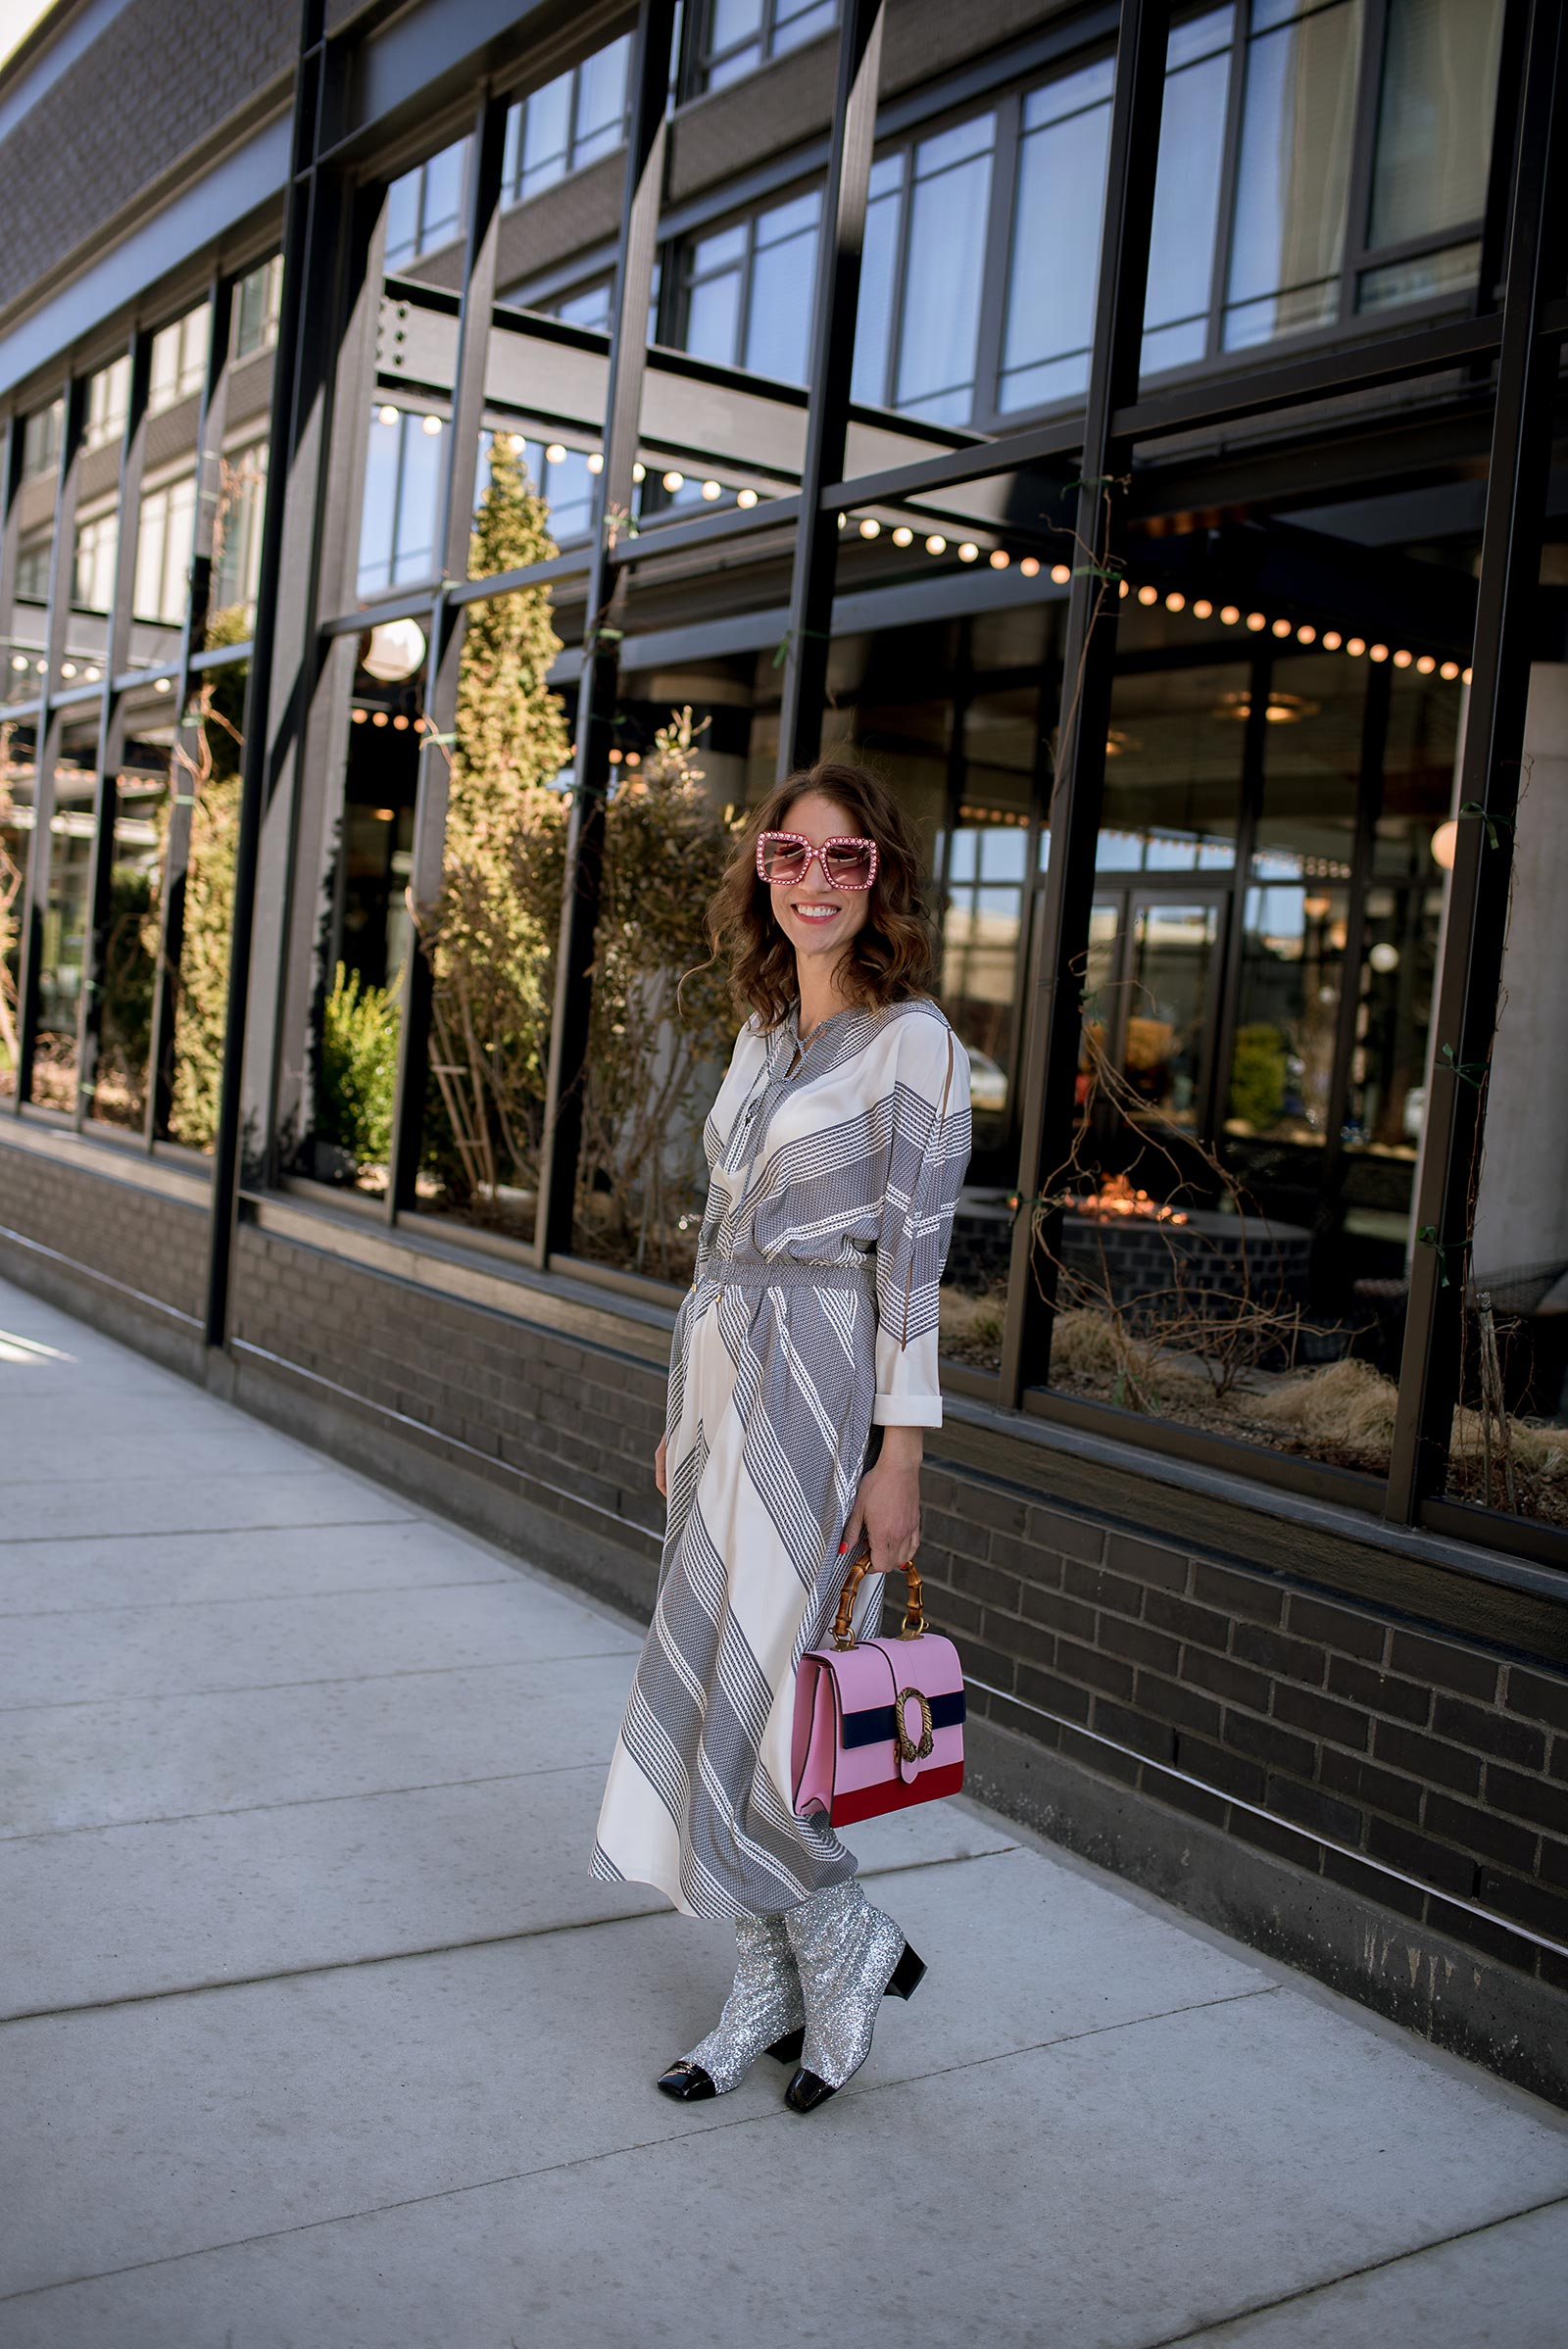 Anna Roufos Sosa of Noir Friday wearing a 10 Crosby Derek Lam dress, Chanel boots and a Gucci bag.